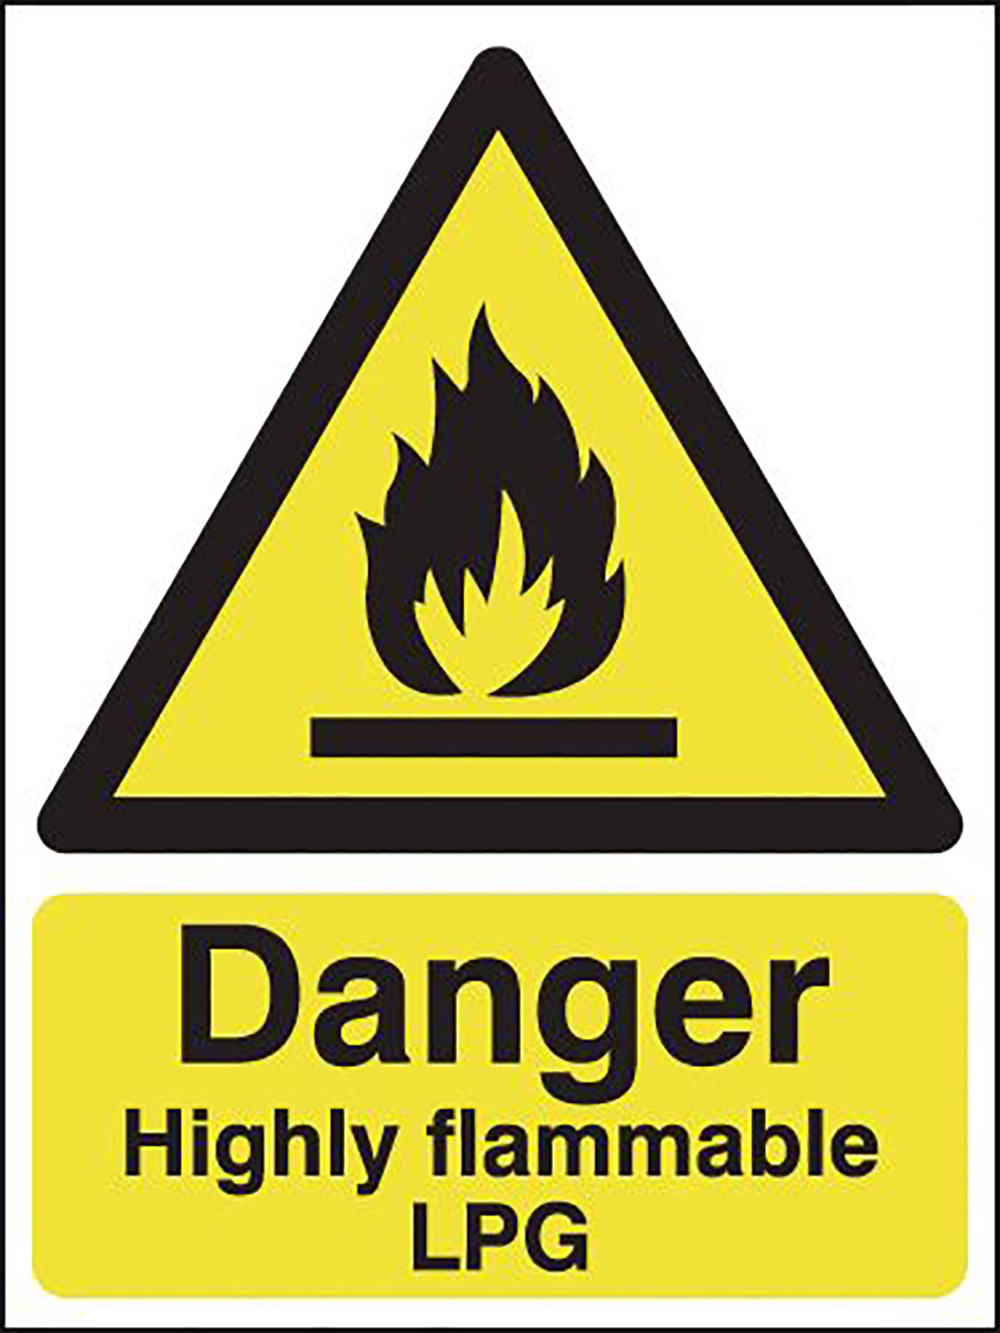 Danger Highly Flammable LPG 420x297mm 1.2mm Rigid Plastic Safety Sign